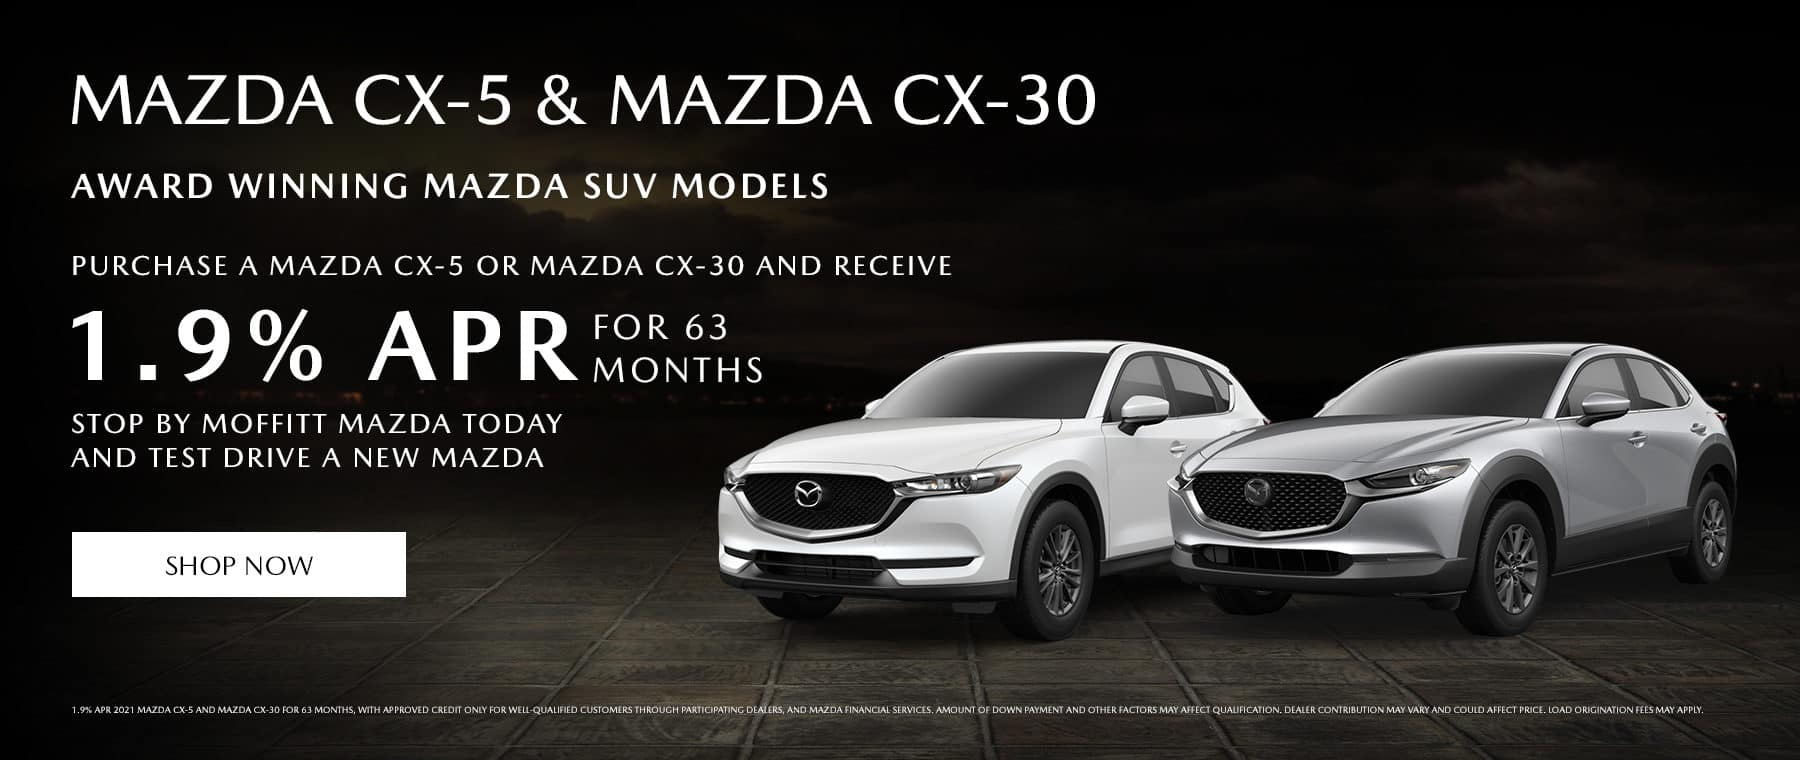 CX-5 & CX-30 Award winning Mazda SUV models. Purchase a Mazda CX-5 or Mazda CX-30 and receive 1.9% APR for 63 months. Stop by Moffitt Mazda today and test drive a new Mazda.